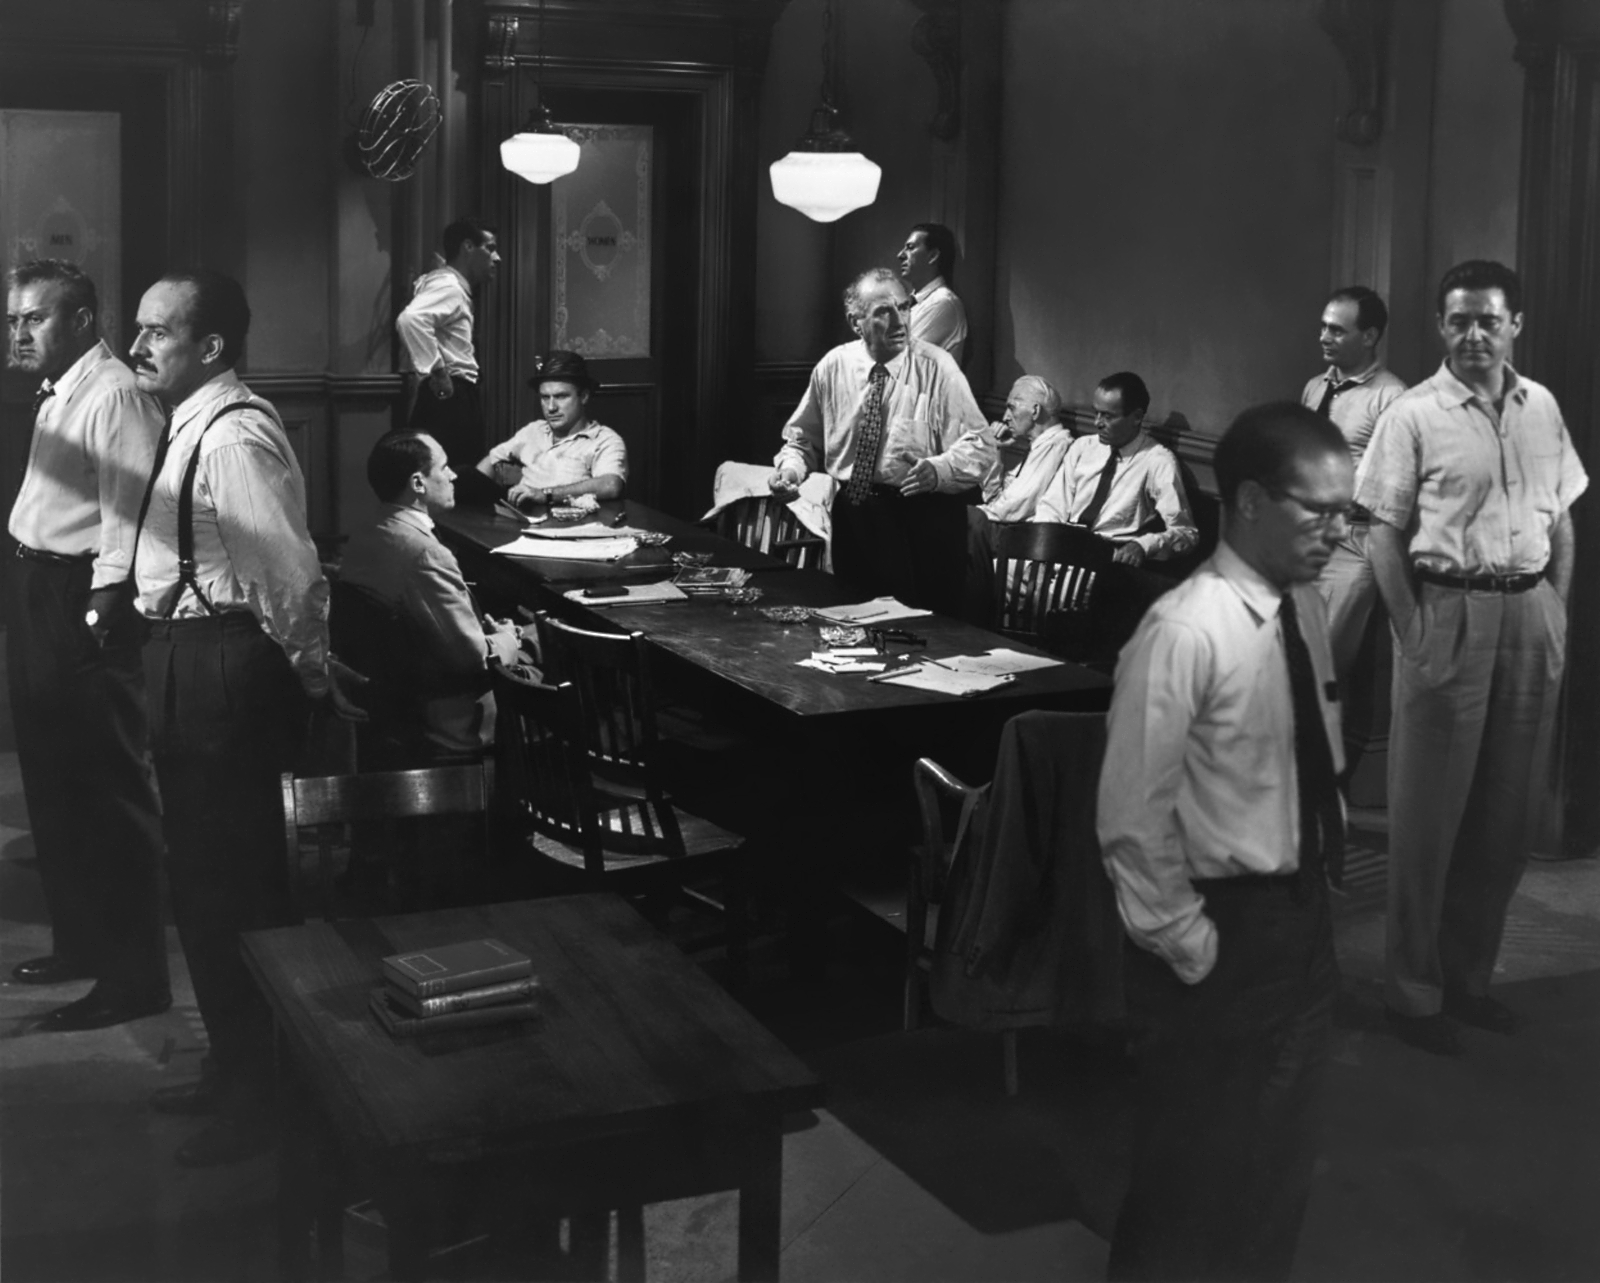 A modern-day cast of 12 Angry Men